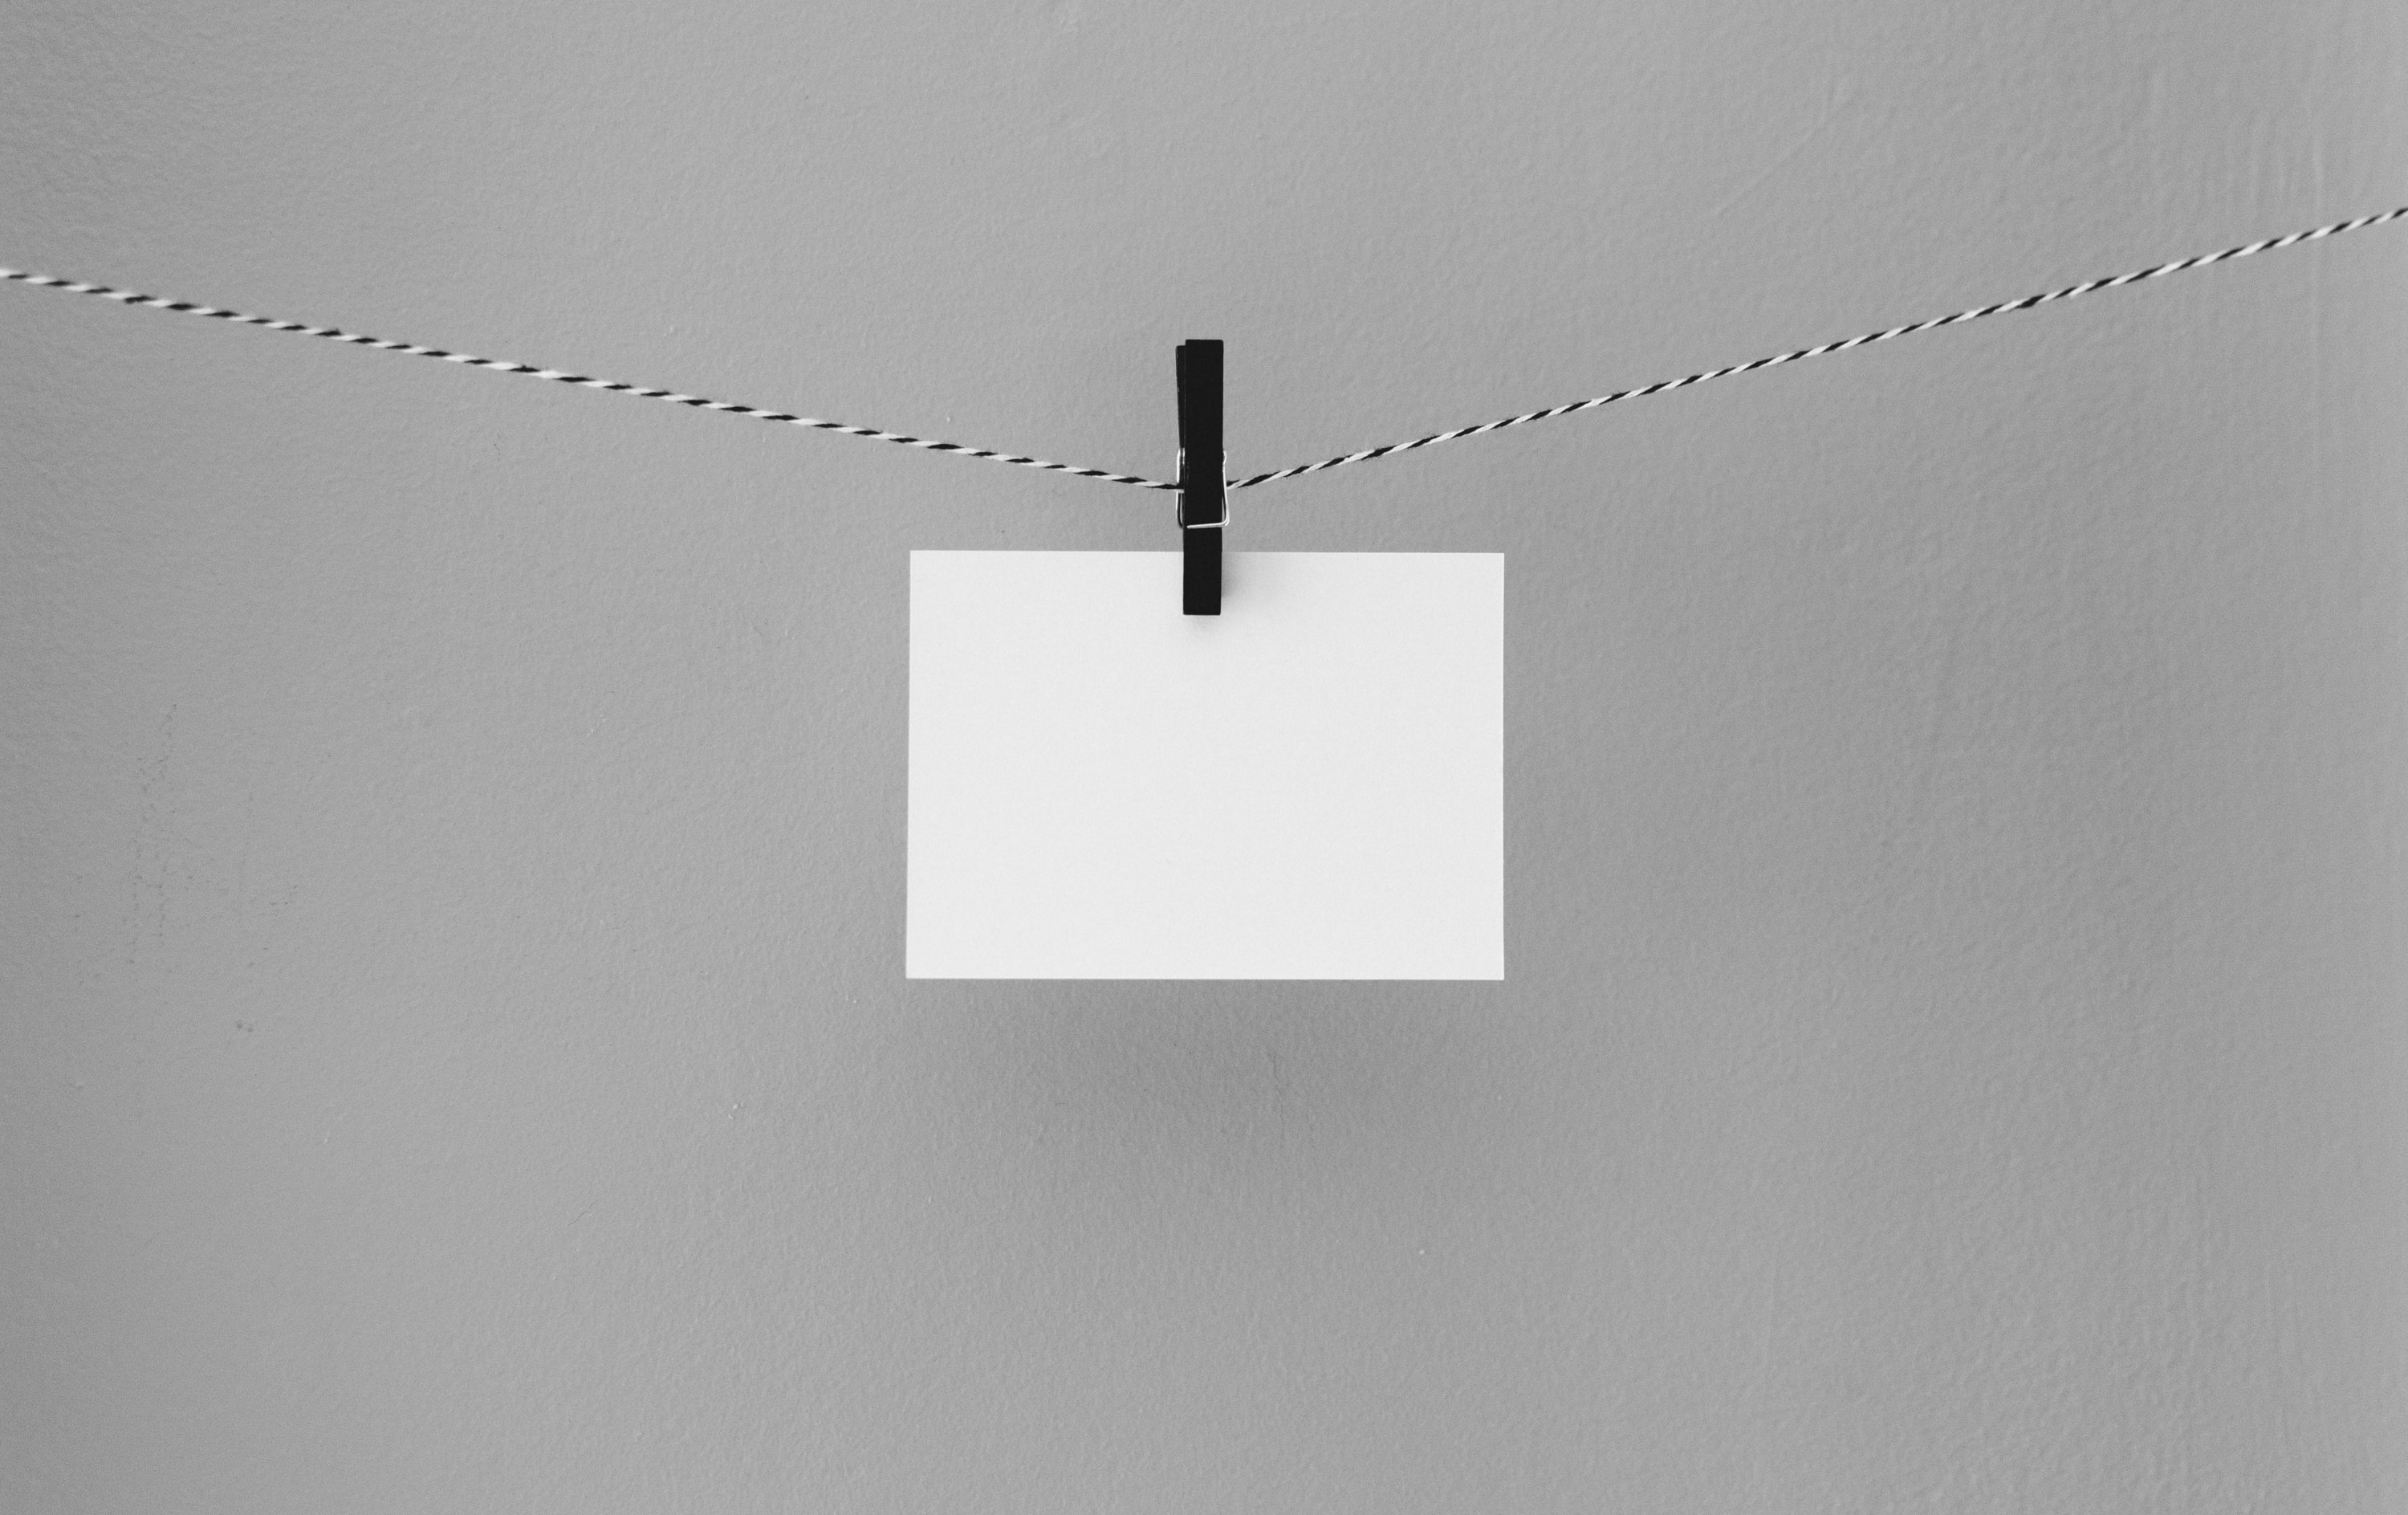 Blank card hanging on a string